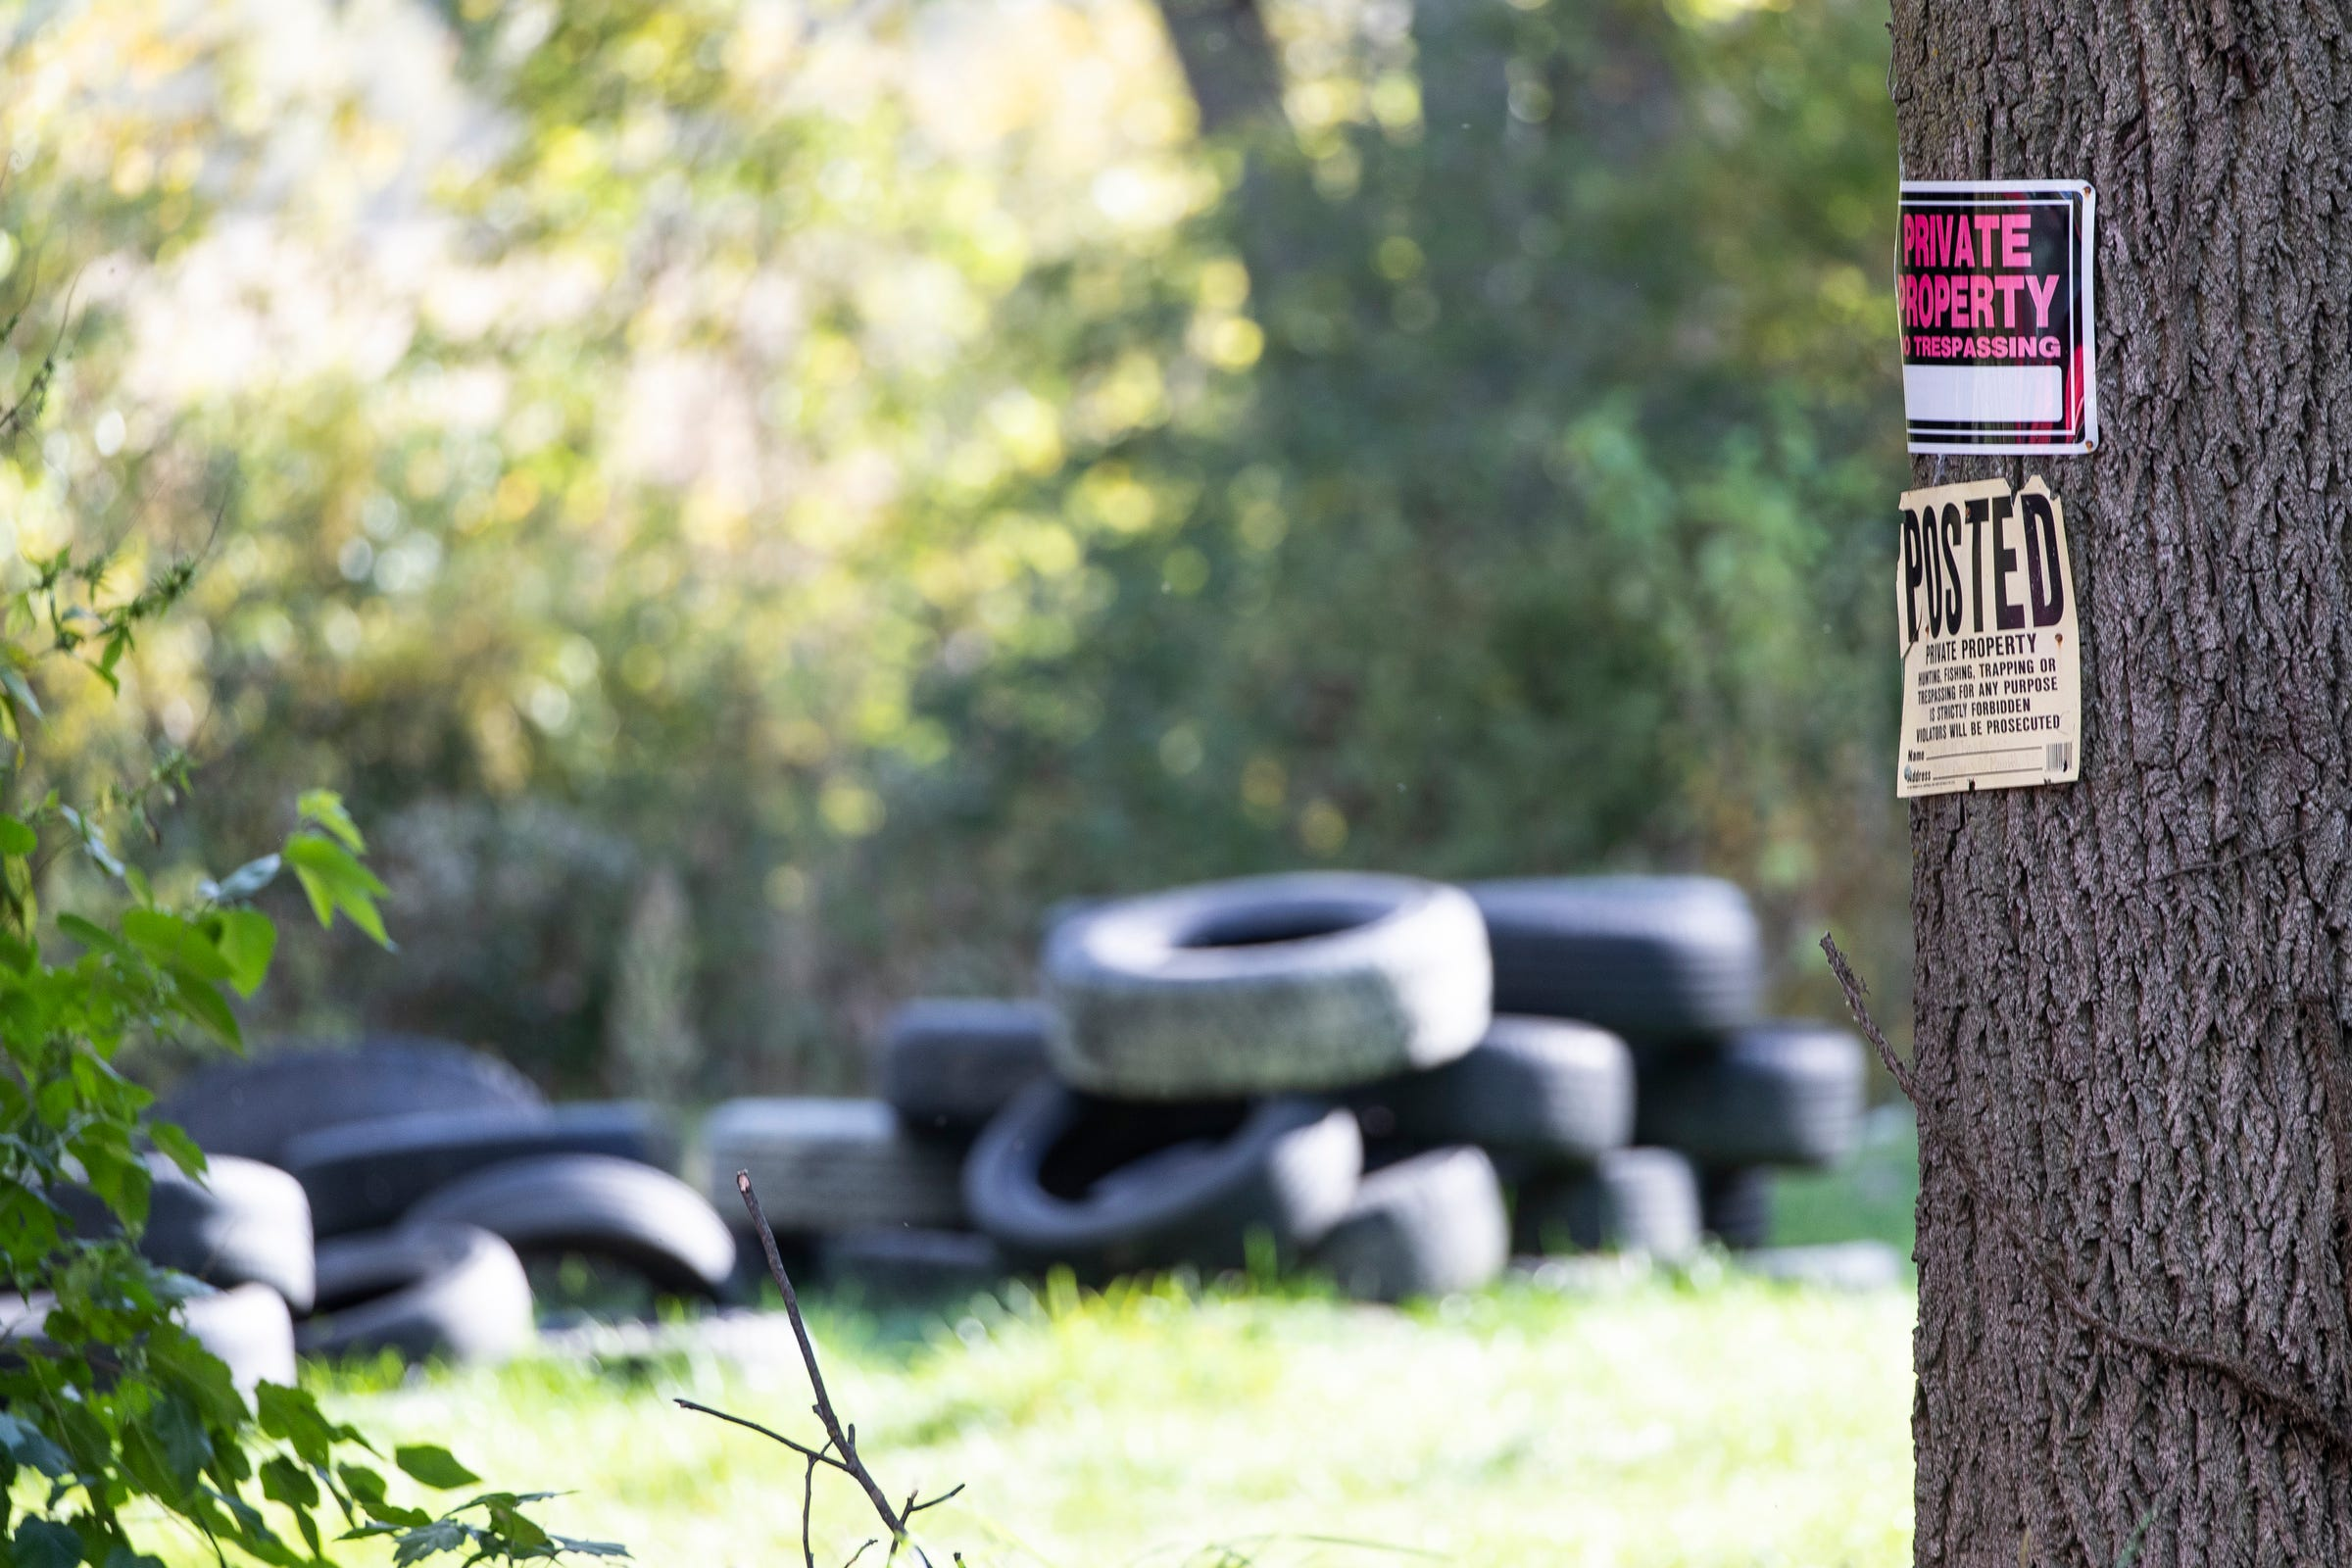 Private property signs are seen in front of a wall of tires on a property where two suspects are believed to reside on Dunn Road in Munith, Thursday, Oct. 8, 2020.